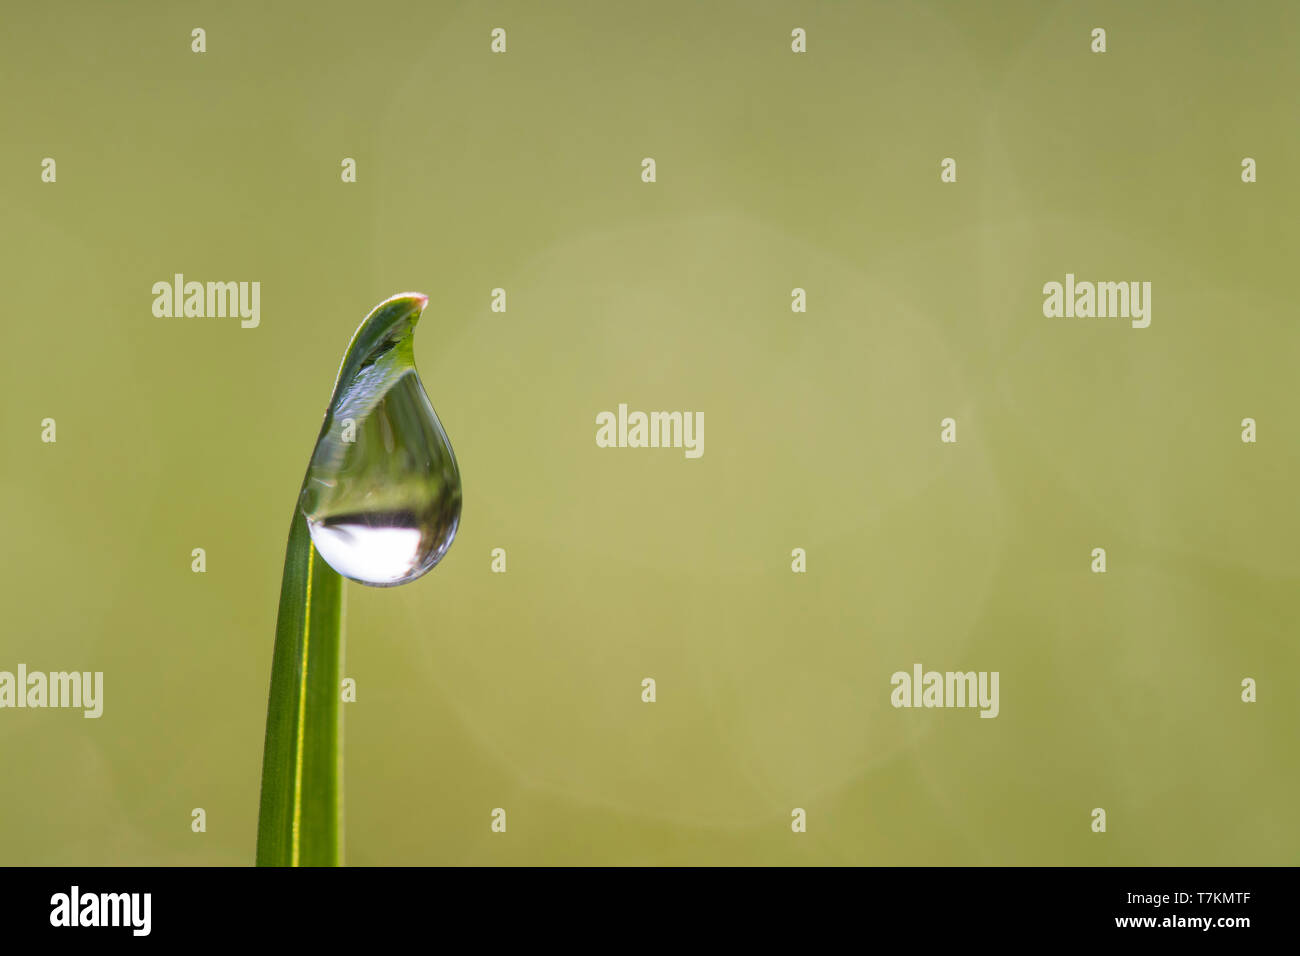 Close-up of dewdrop hanging from blade of grass / grass halm in grassland / meadow - Stock Image